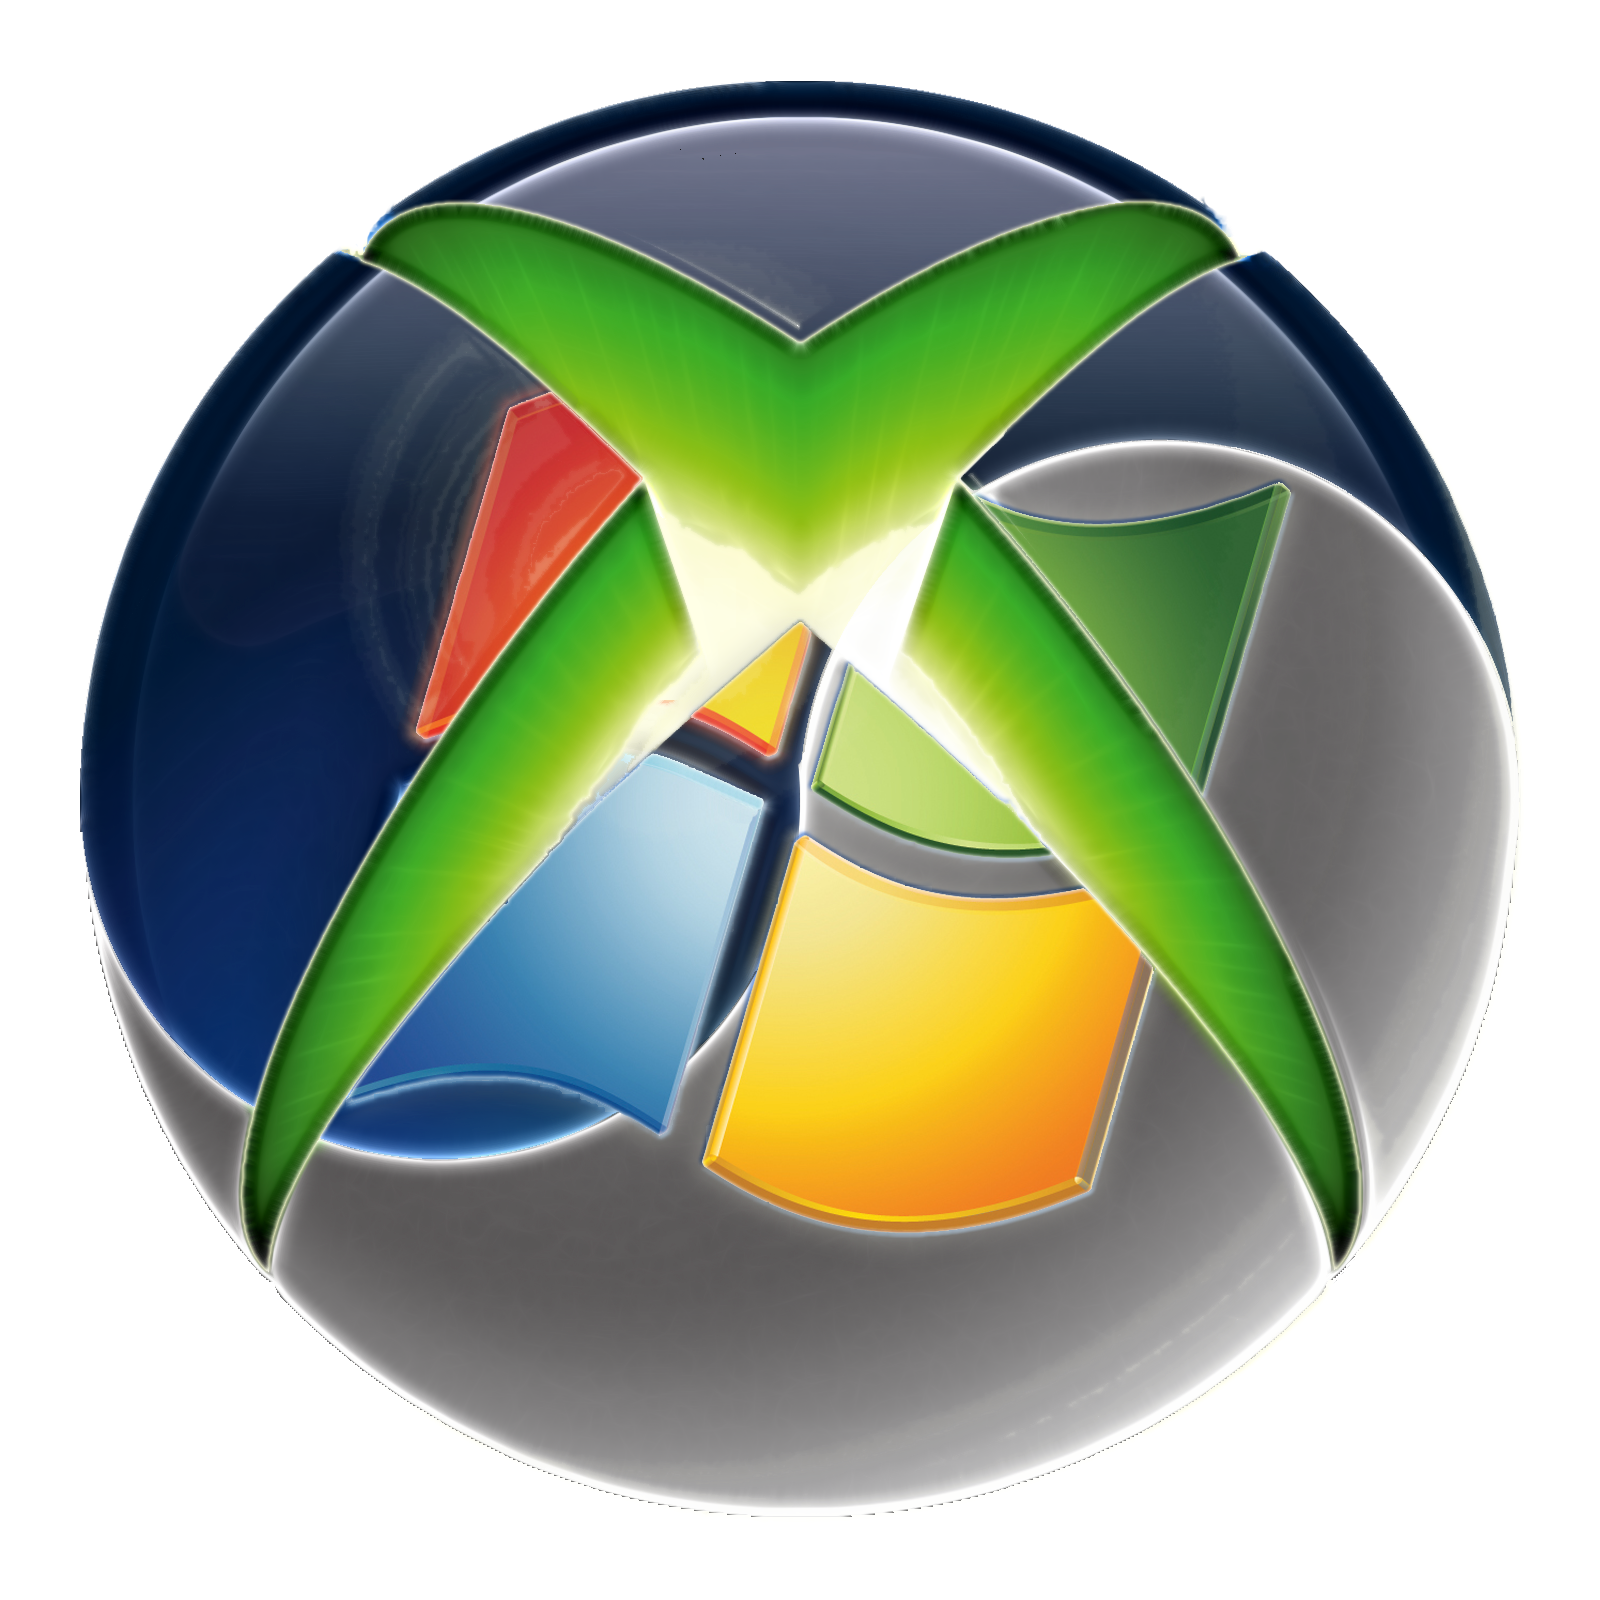 all xbox windows logos #2502